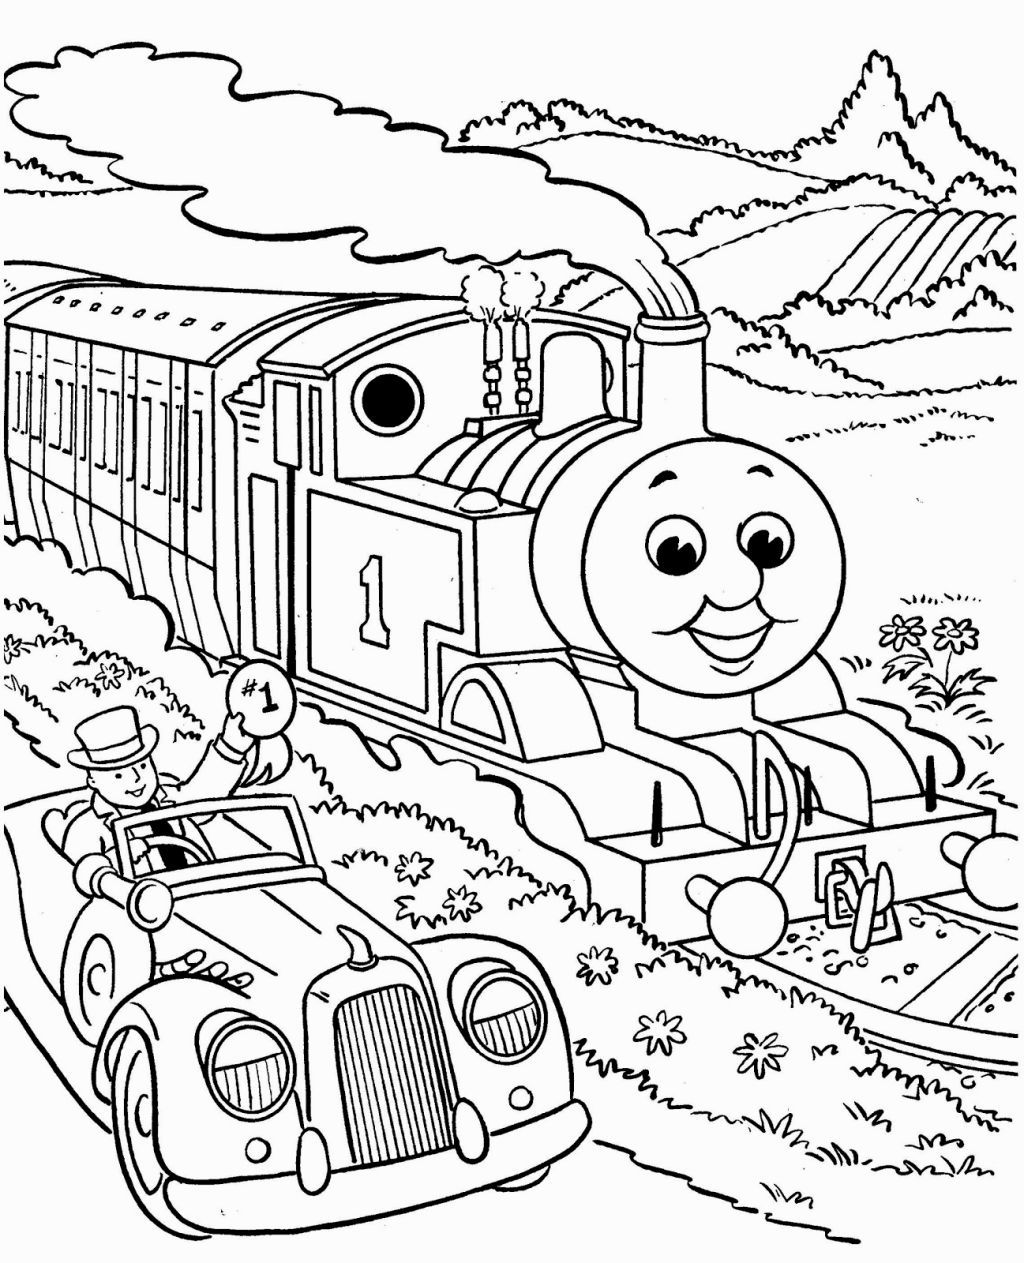 Thomas The Train Coloring Books   Coloring Pages   Pinterest